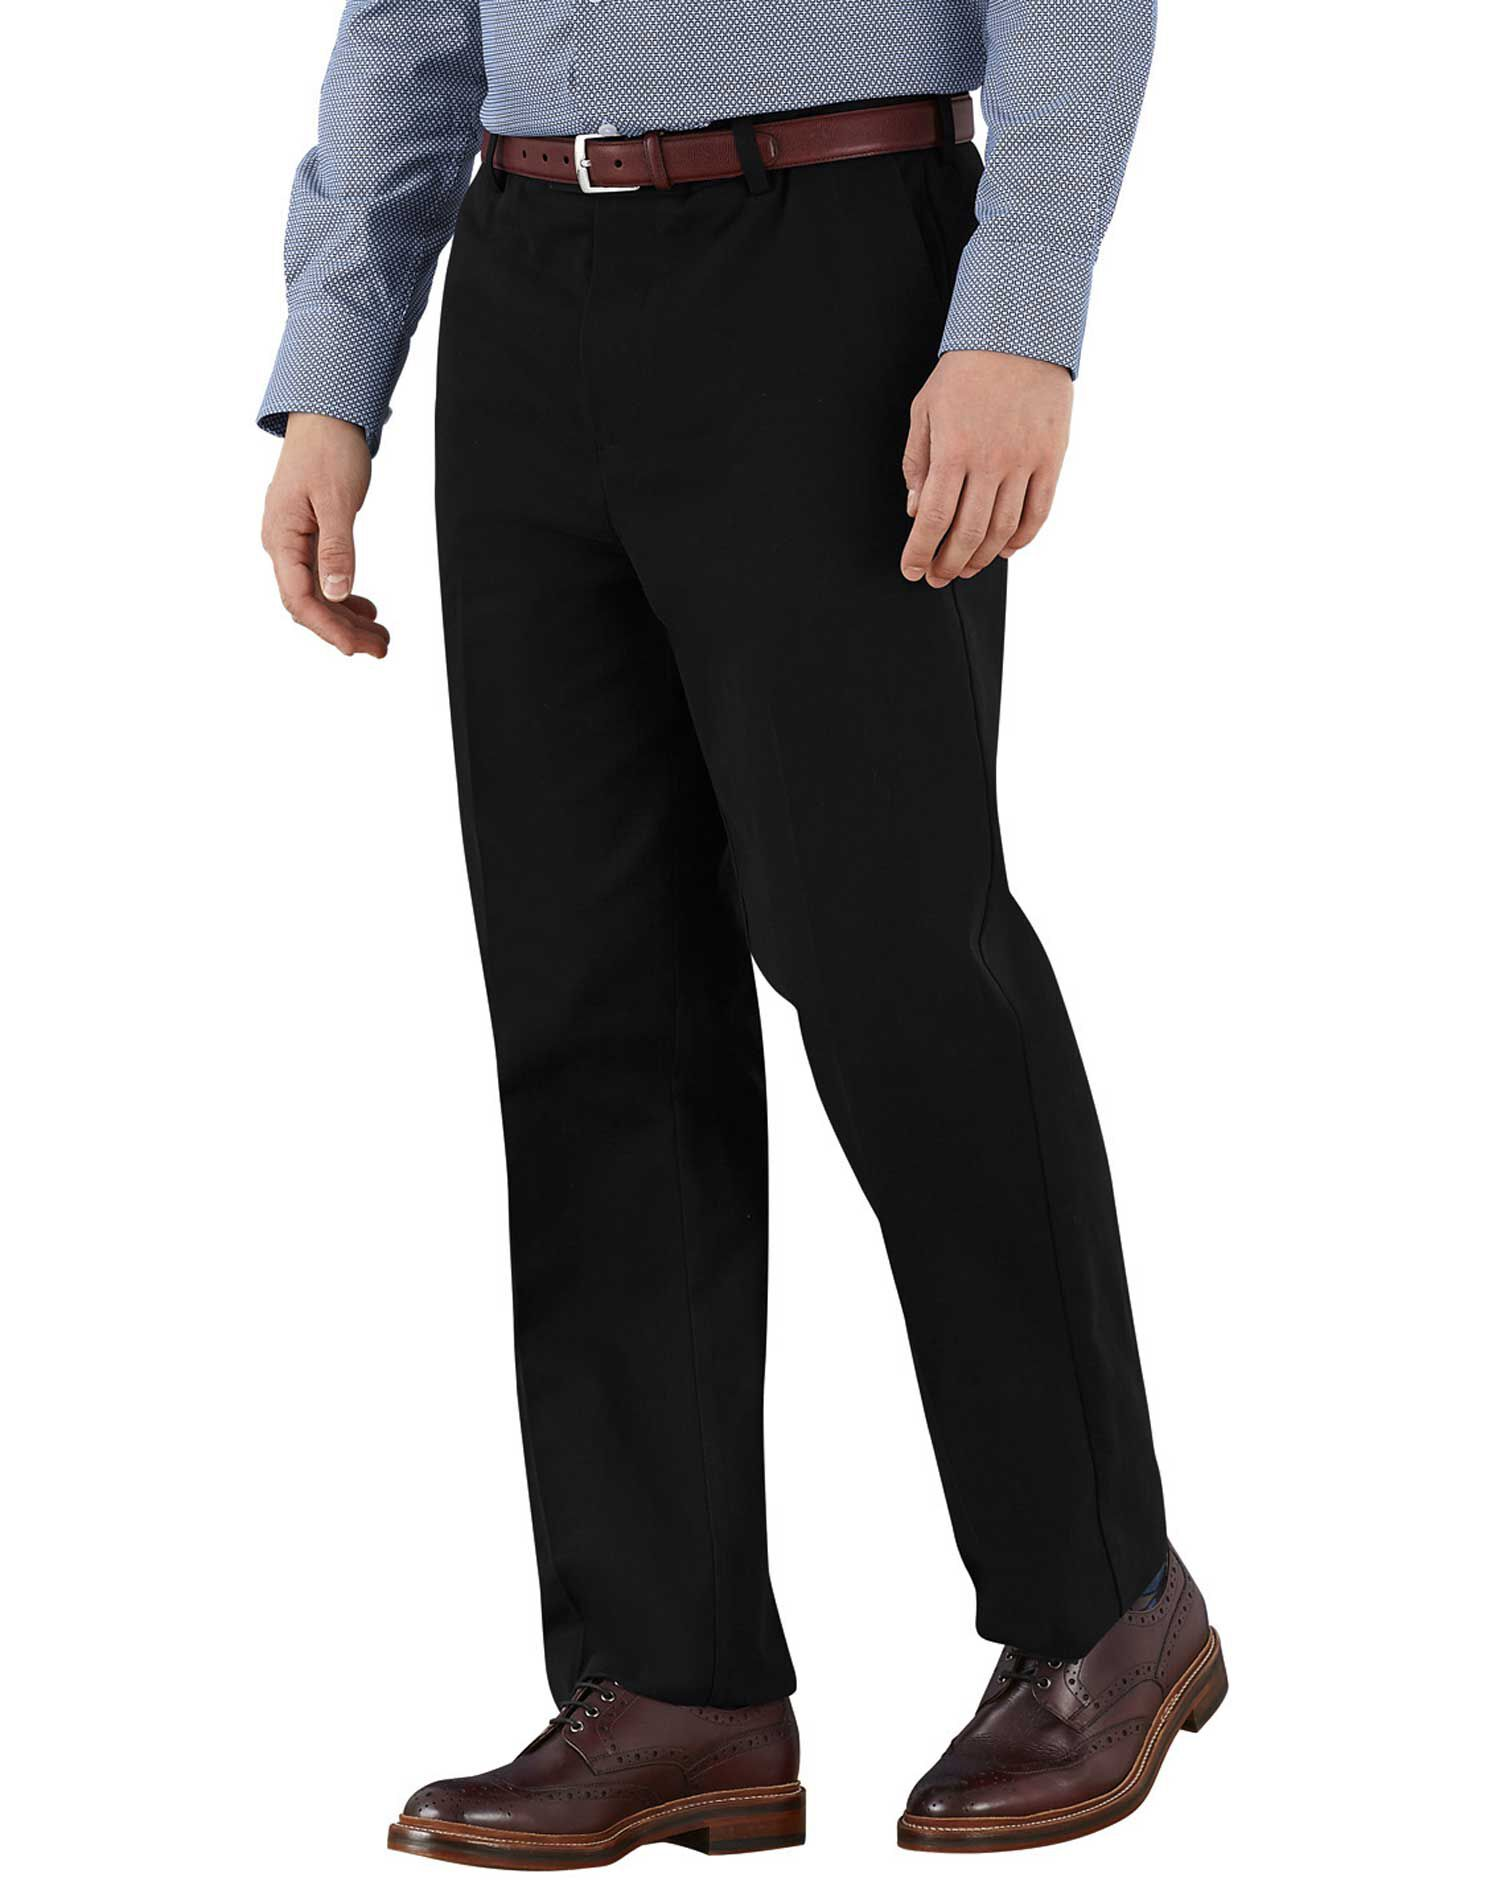 Black Classic Fit Flat Front Non-Iron Cotton Chino Trousers Size W34 L34 by Charles Tyrwhitt